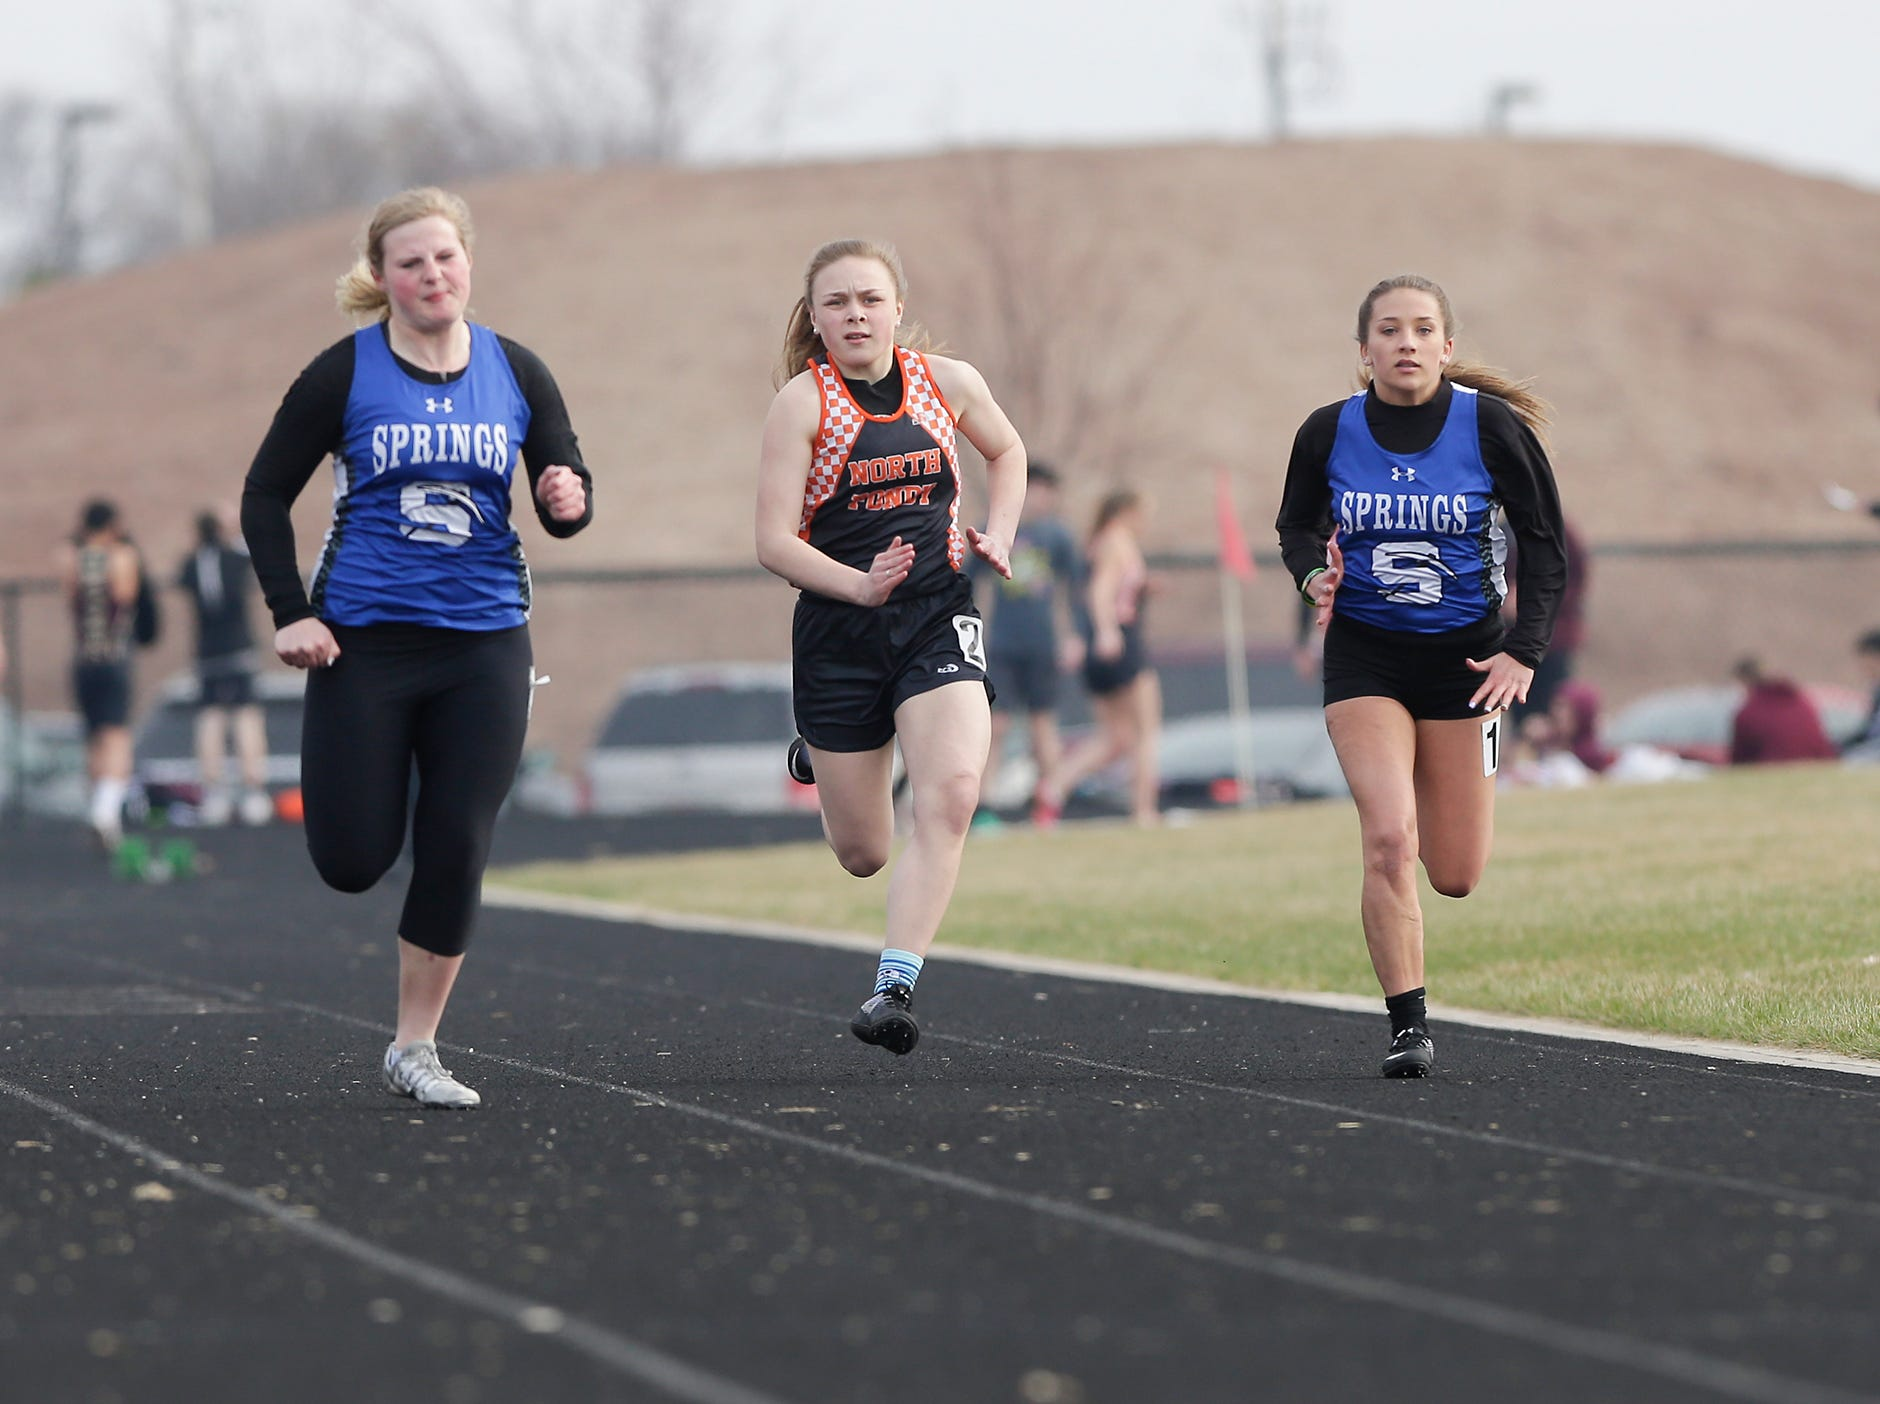 North Fond du Lac High School's Ailah Thoreson and St. Mary's Springs Academy's Peyton Hyland and Sarah Beisber take part in the girls 100 meter dash Tuesday, April 16, 2019 at North Fond du Lac High School in North Fond du Lac, Wis. Doug Raflik/USA TODAY NETWORK-Wisconsin